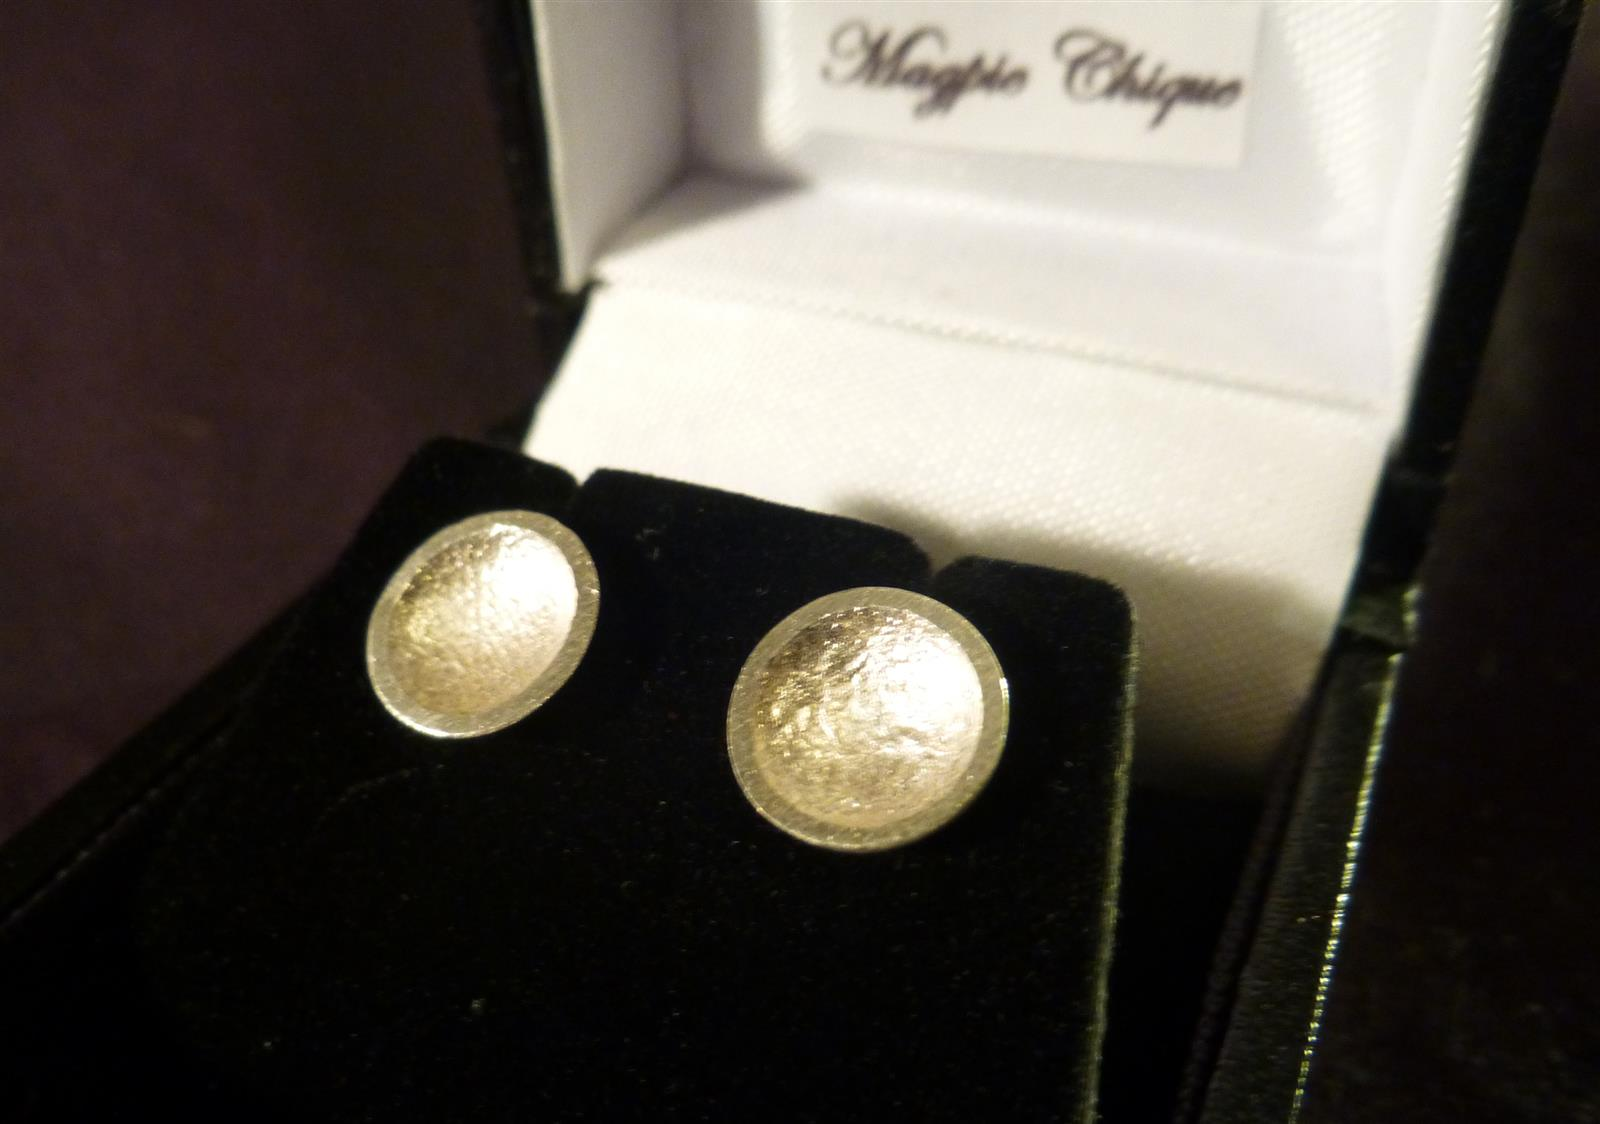 LS12 Liz Simmons Silver Reticulated concave dome stud earrings 9mm